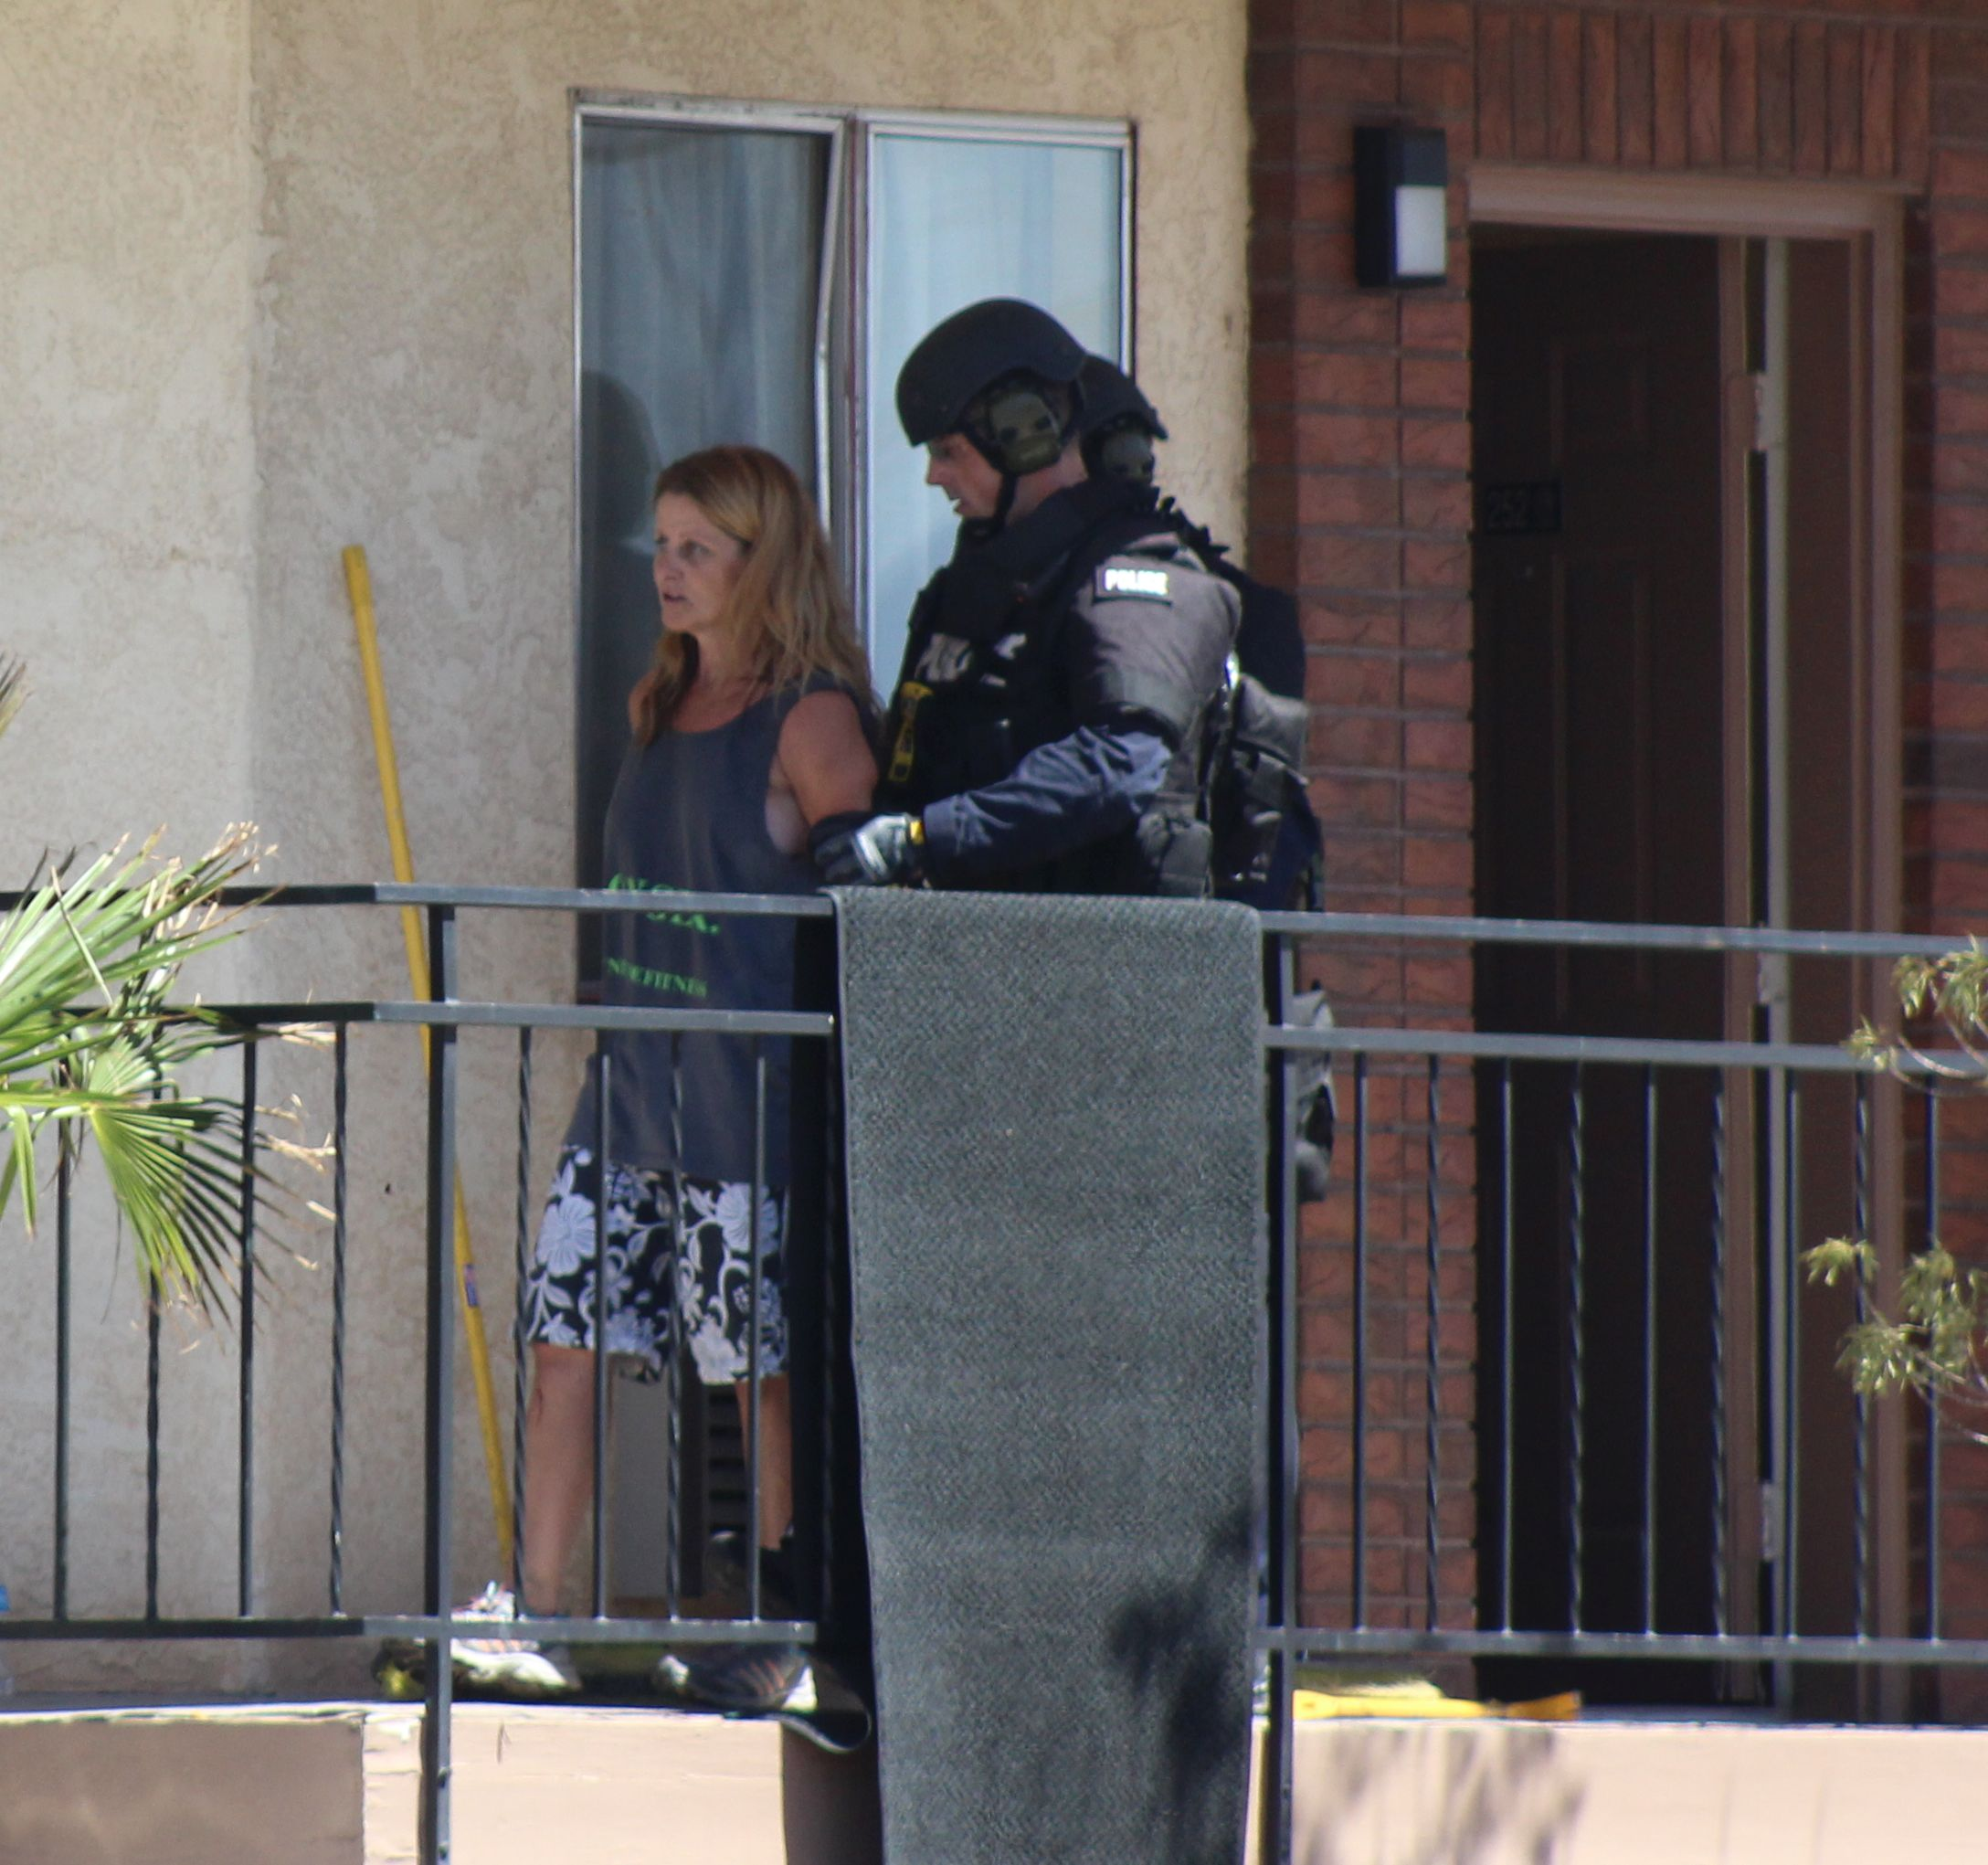 A SWAT team member escorts Melissa Rowan, 46, from her room at the Sun Time Inn where she had been destroying the property. St. George, Utah, July 17, 2016   Photo by Ric Wayman, St. George News